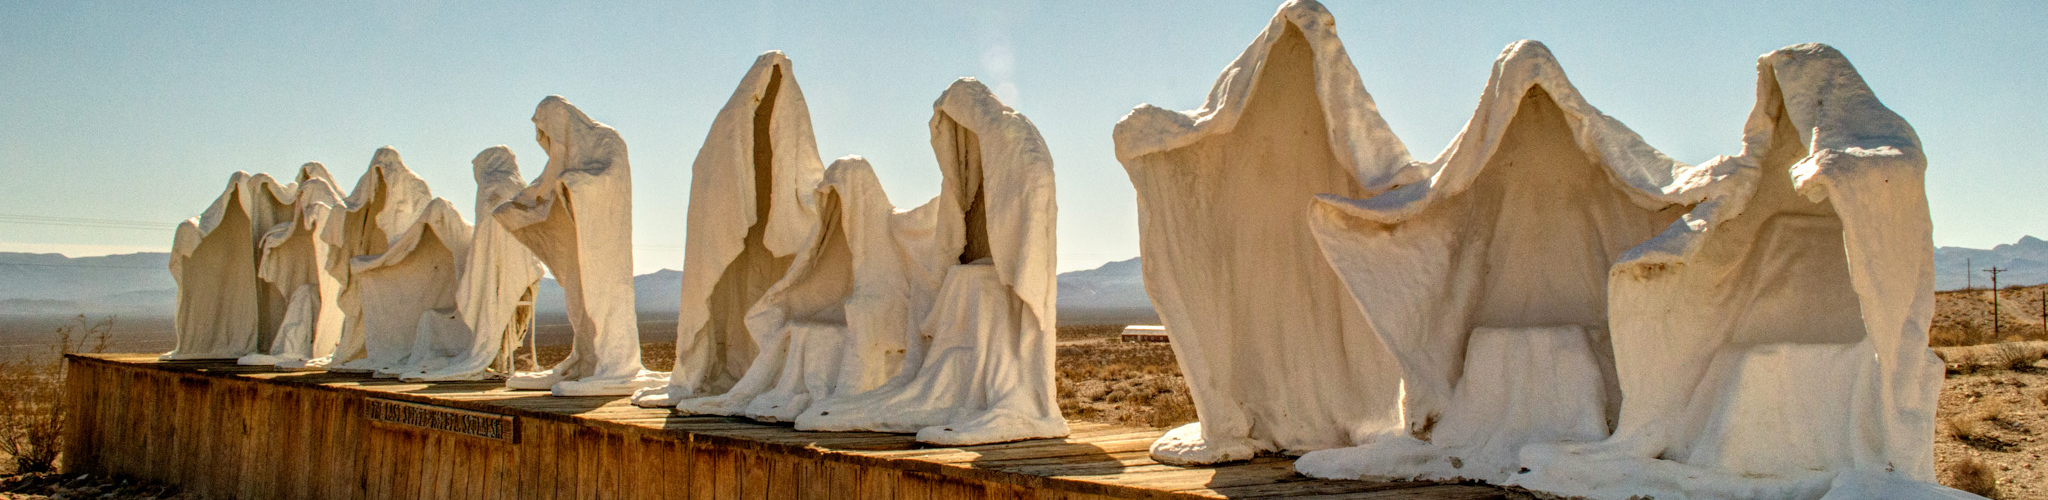 <p>Cloaked, ghostly figures are posed in a recreation of DaVincis Last Supper Available at: Fine Art America</p>